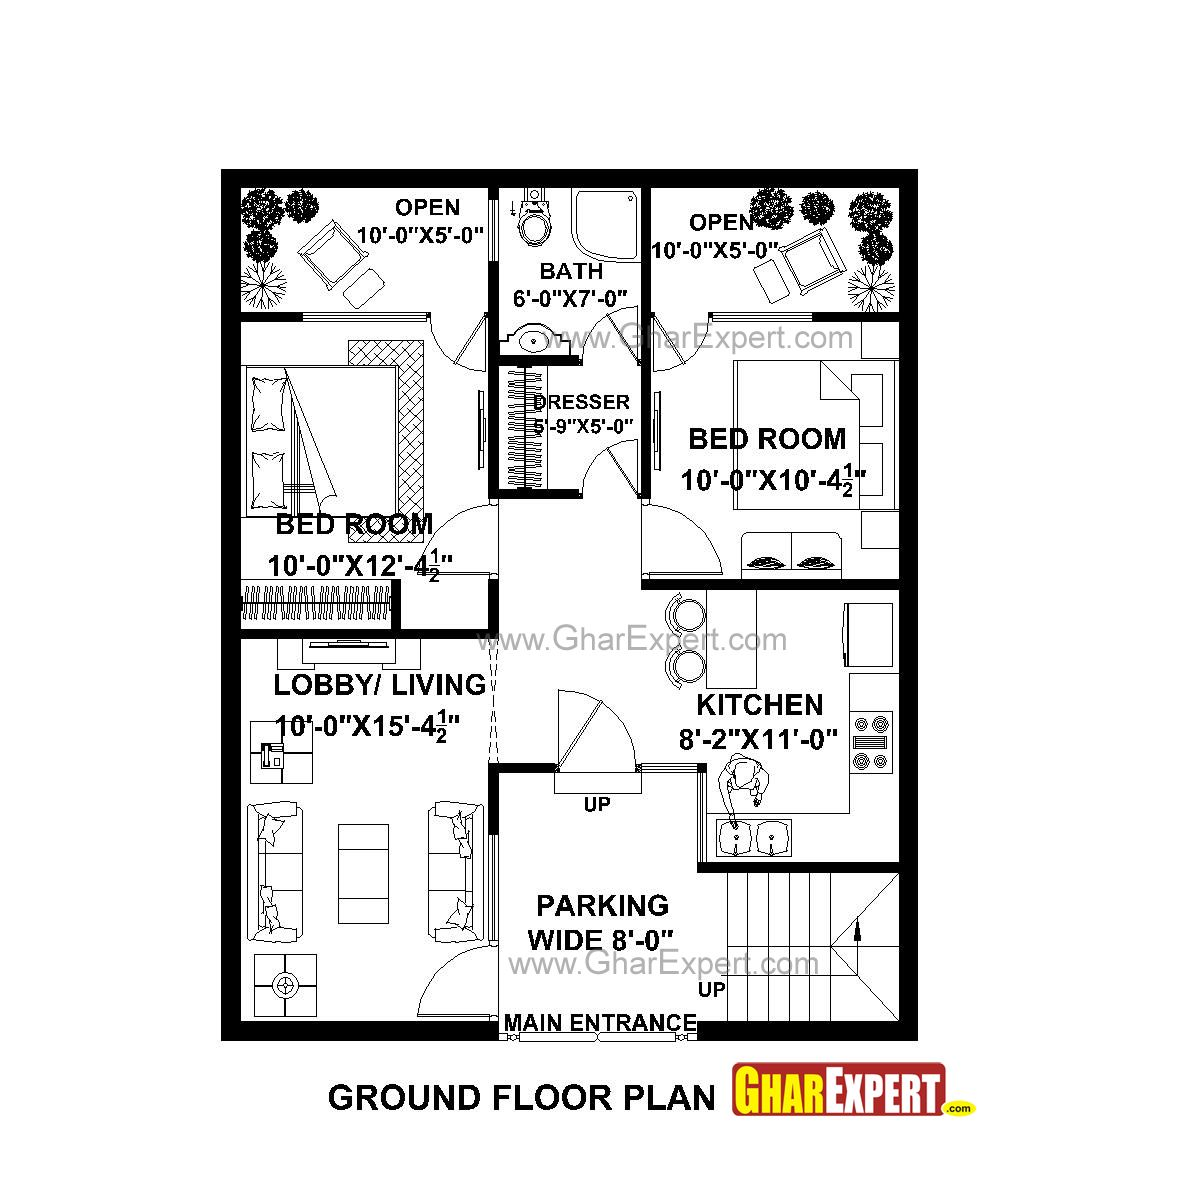 House Plan For 30 Feet By 35 Feet Plot In 2020 House Plans How To Plan Ground Floor Plan